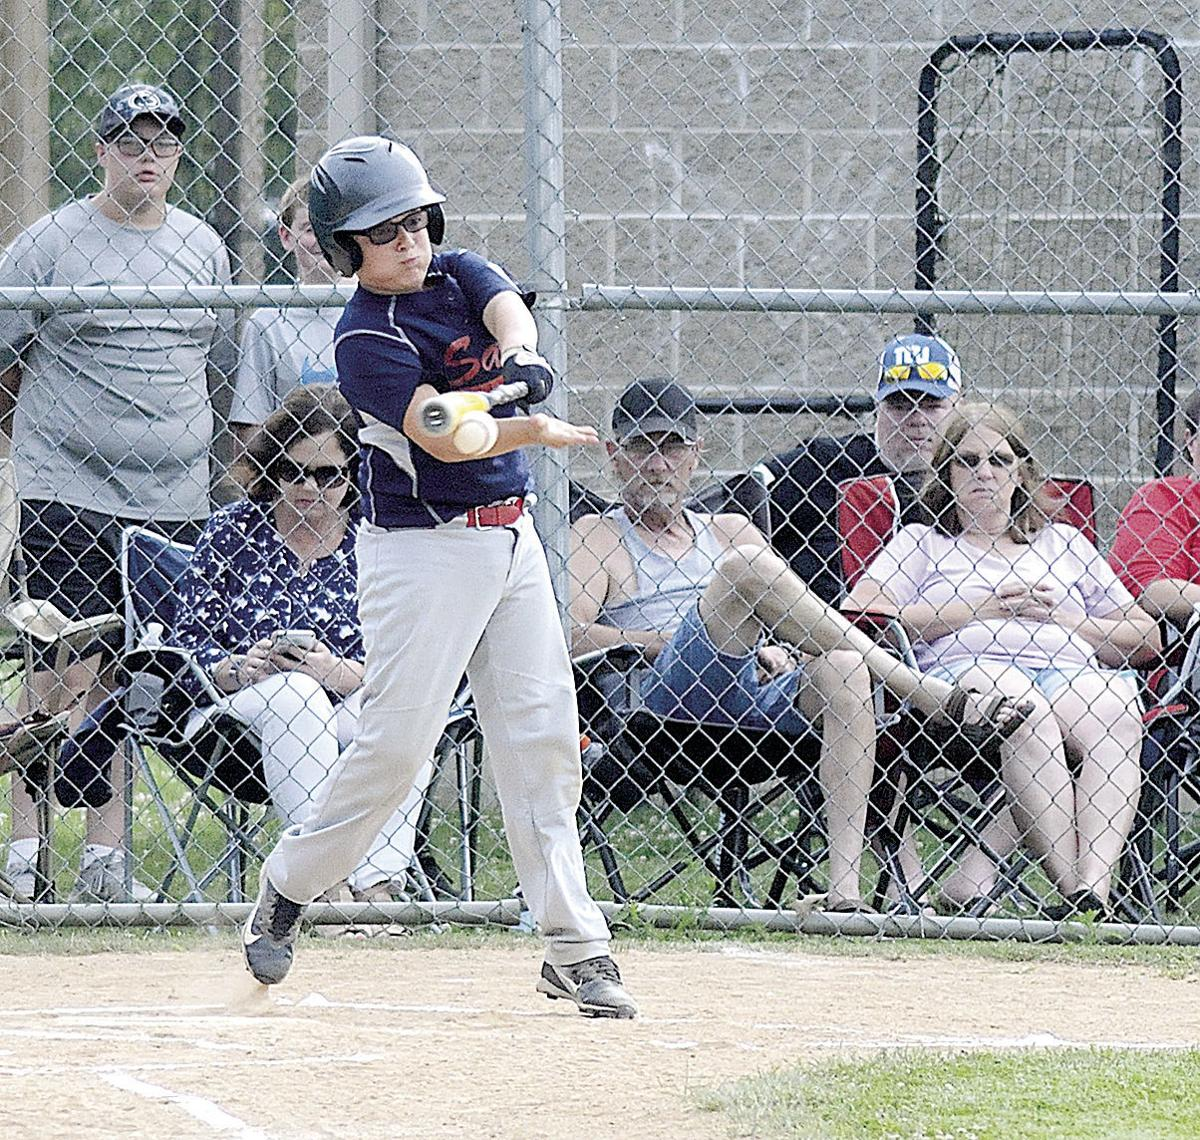 Sayre Minors roll over Susquehanna County